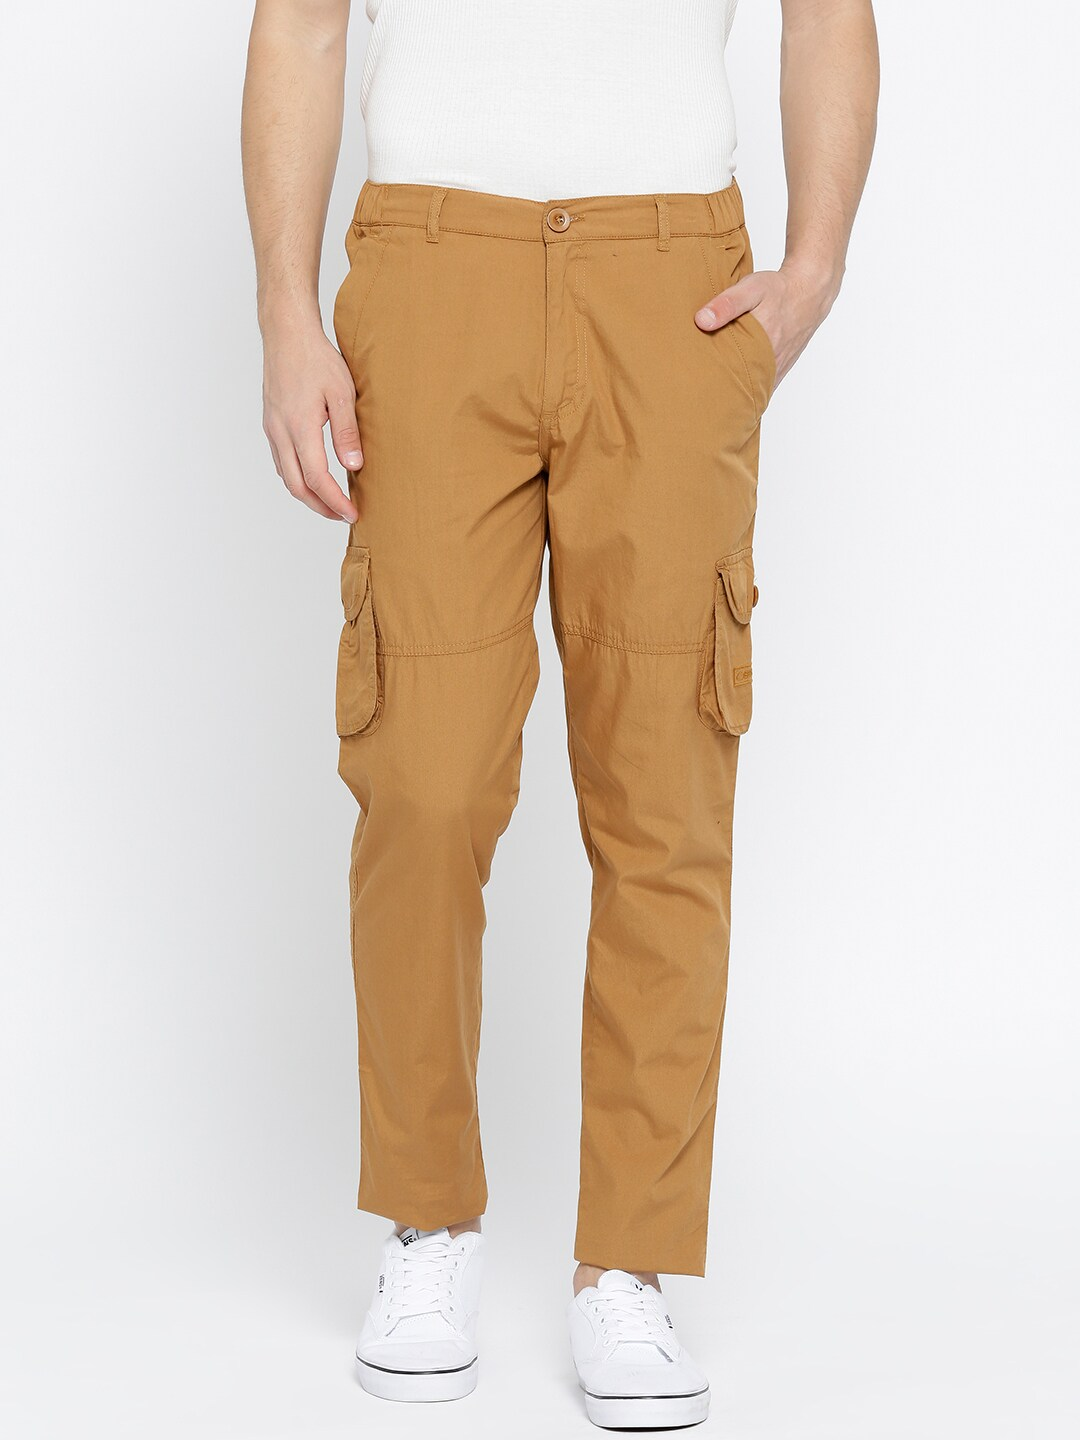 f5bfa3747ce Cargo Pants For Men - Buy Latest Trendy Cargo Pants Online